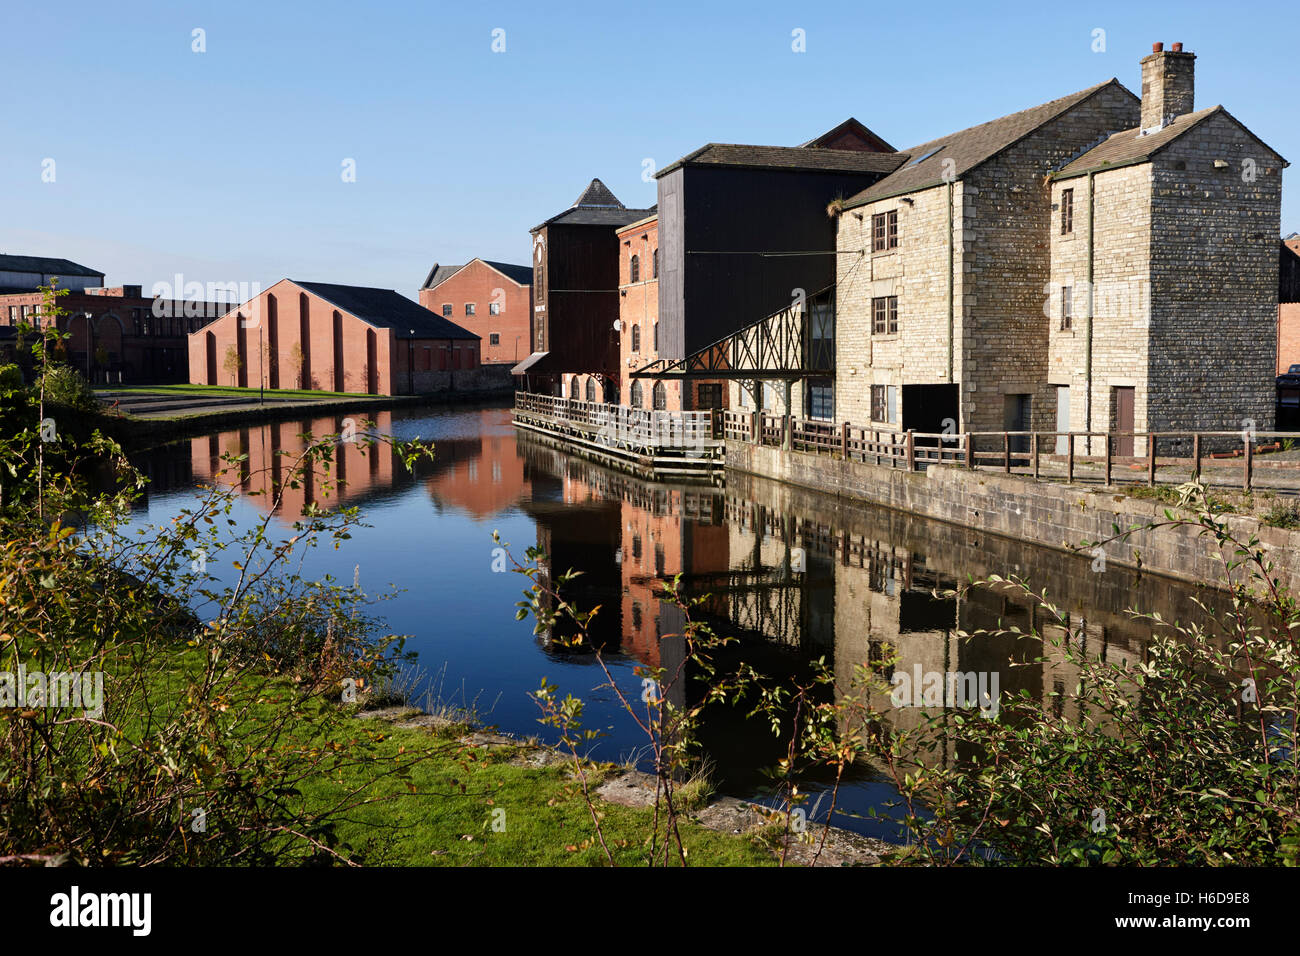 Wigan Pier on the Liverpool Leeds Canal England United Kingdom - Stock Image